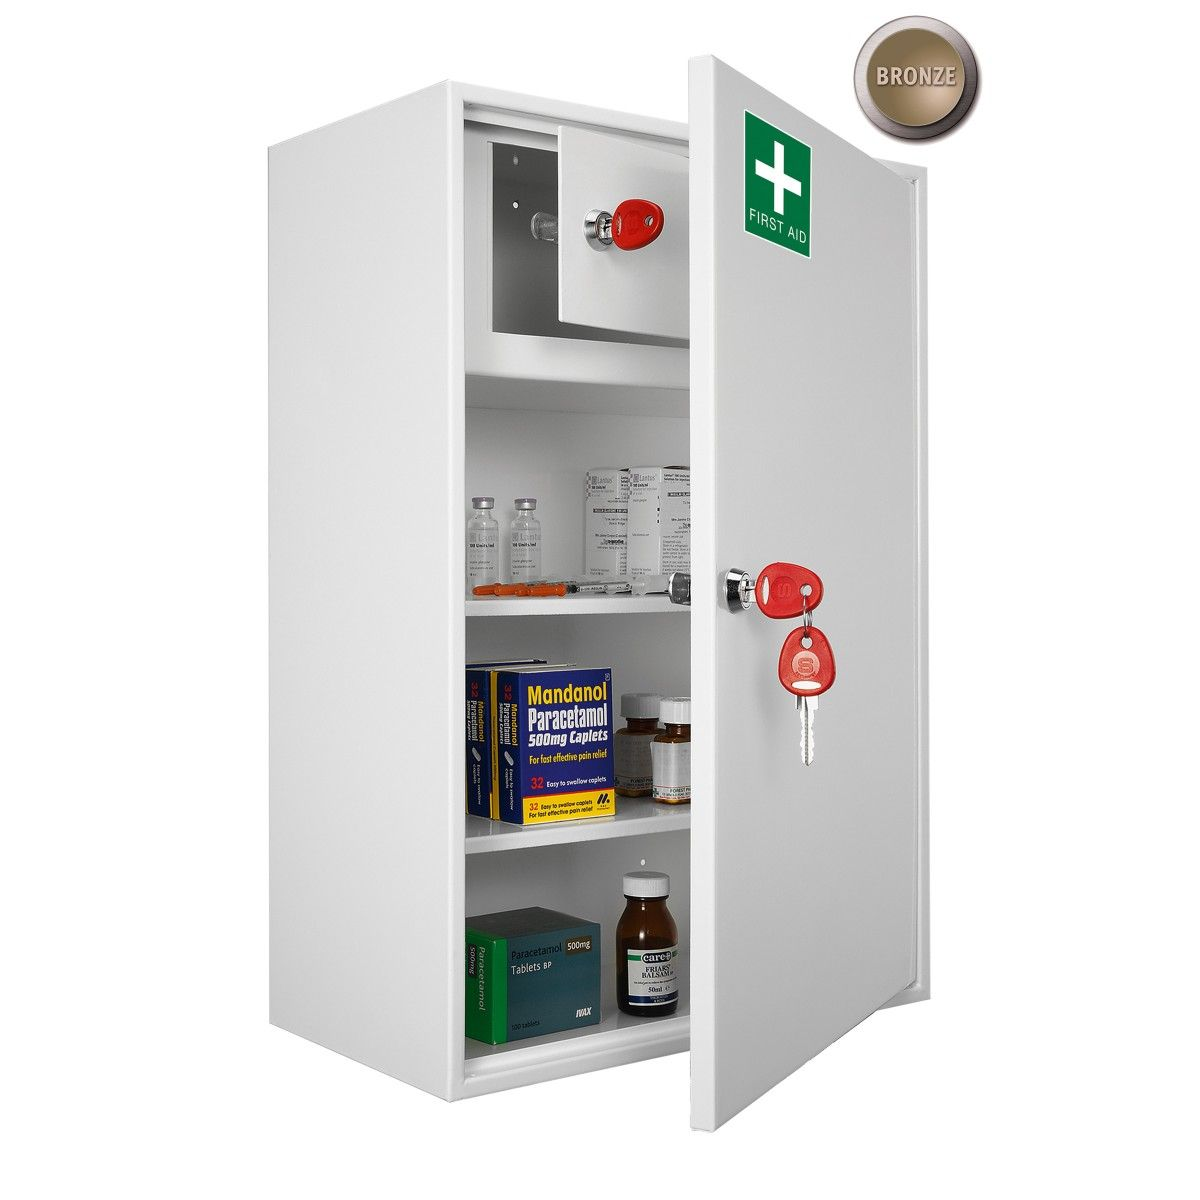 securikey medical cabinet first aid ideal for general first aid equipment lockable inner. Black Bedroom Furniture Sets. Home Design Ideas